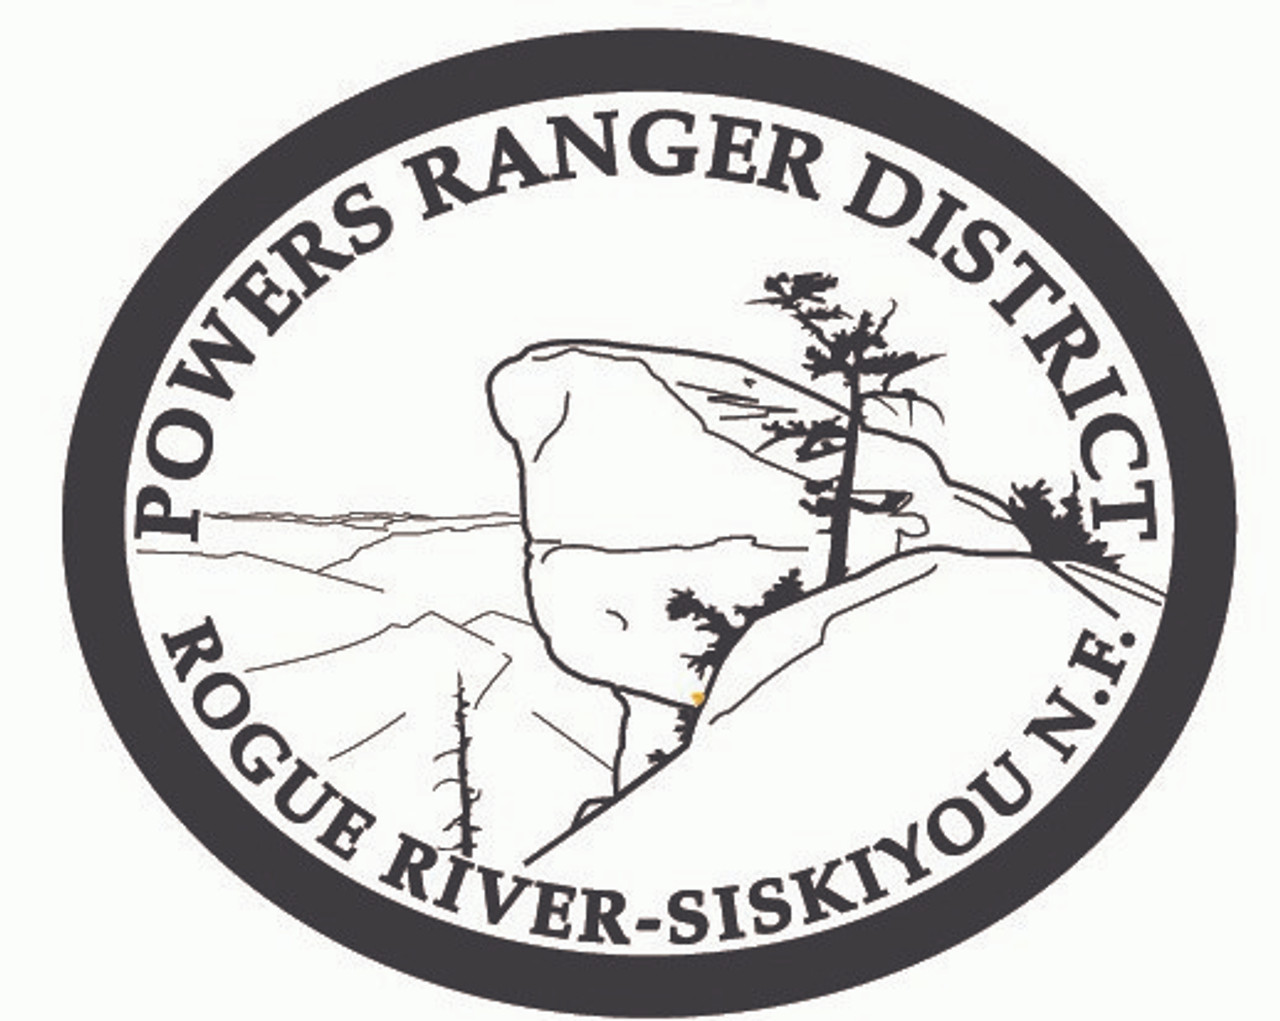 Powers Ranger District Rogue River Siskiyou National Forest Buckle